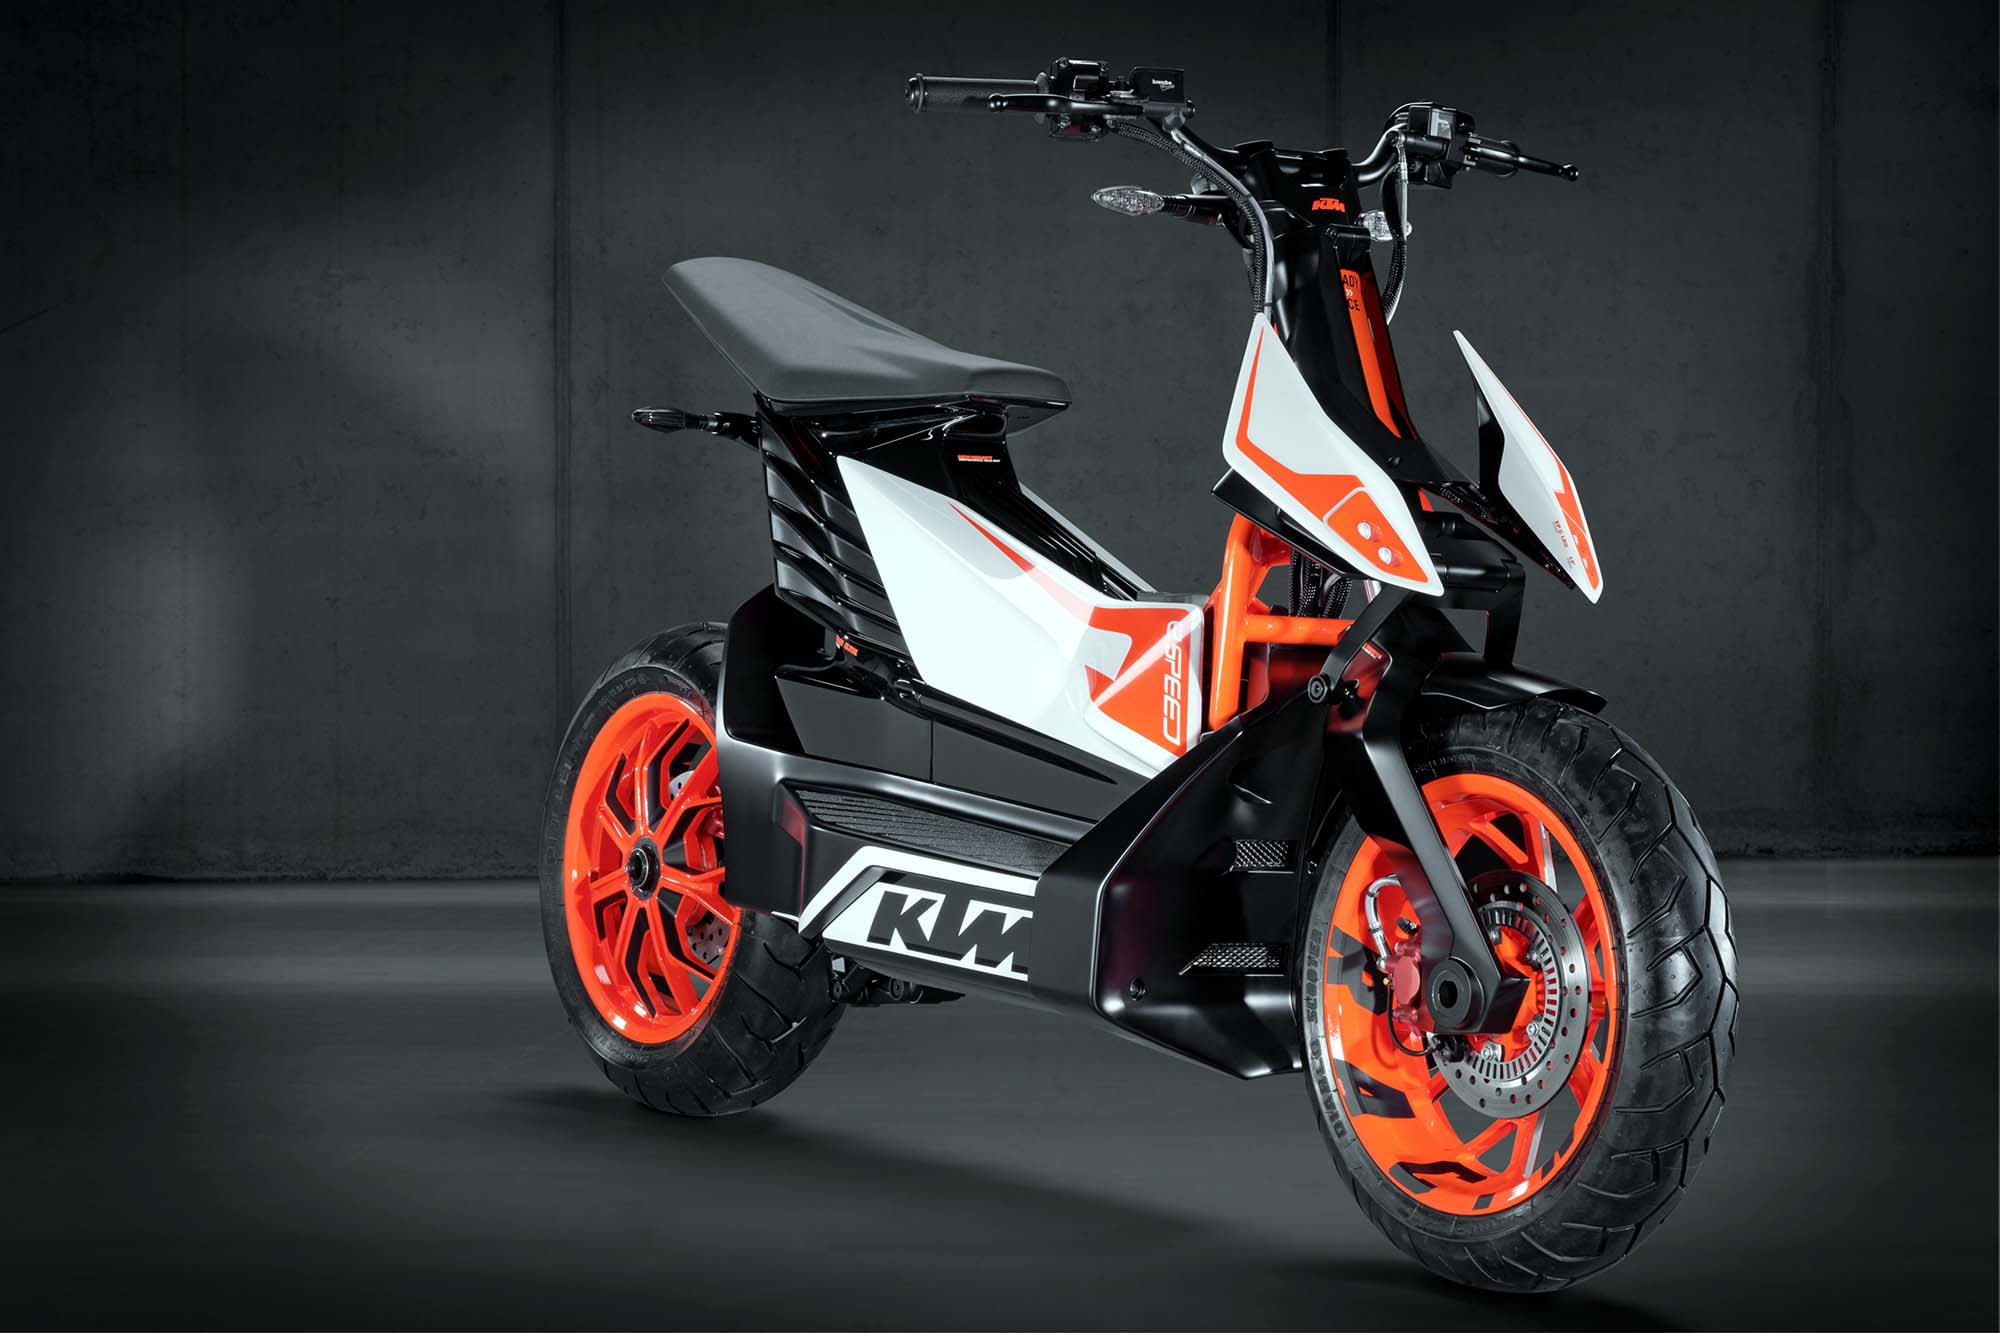 ktm freeride e scheduled for 2014 e speed launches in 2015 autoevolution. Black Bedroom Furniture Sets. Home Design Ideas